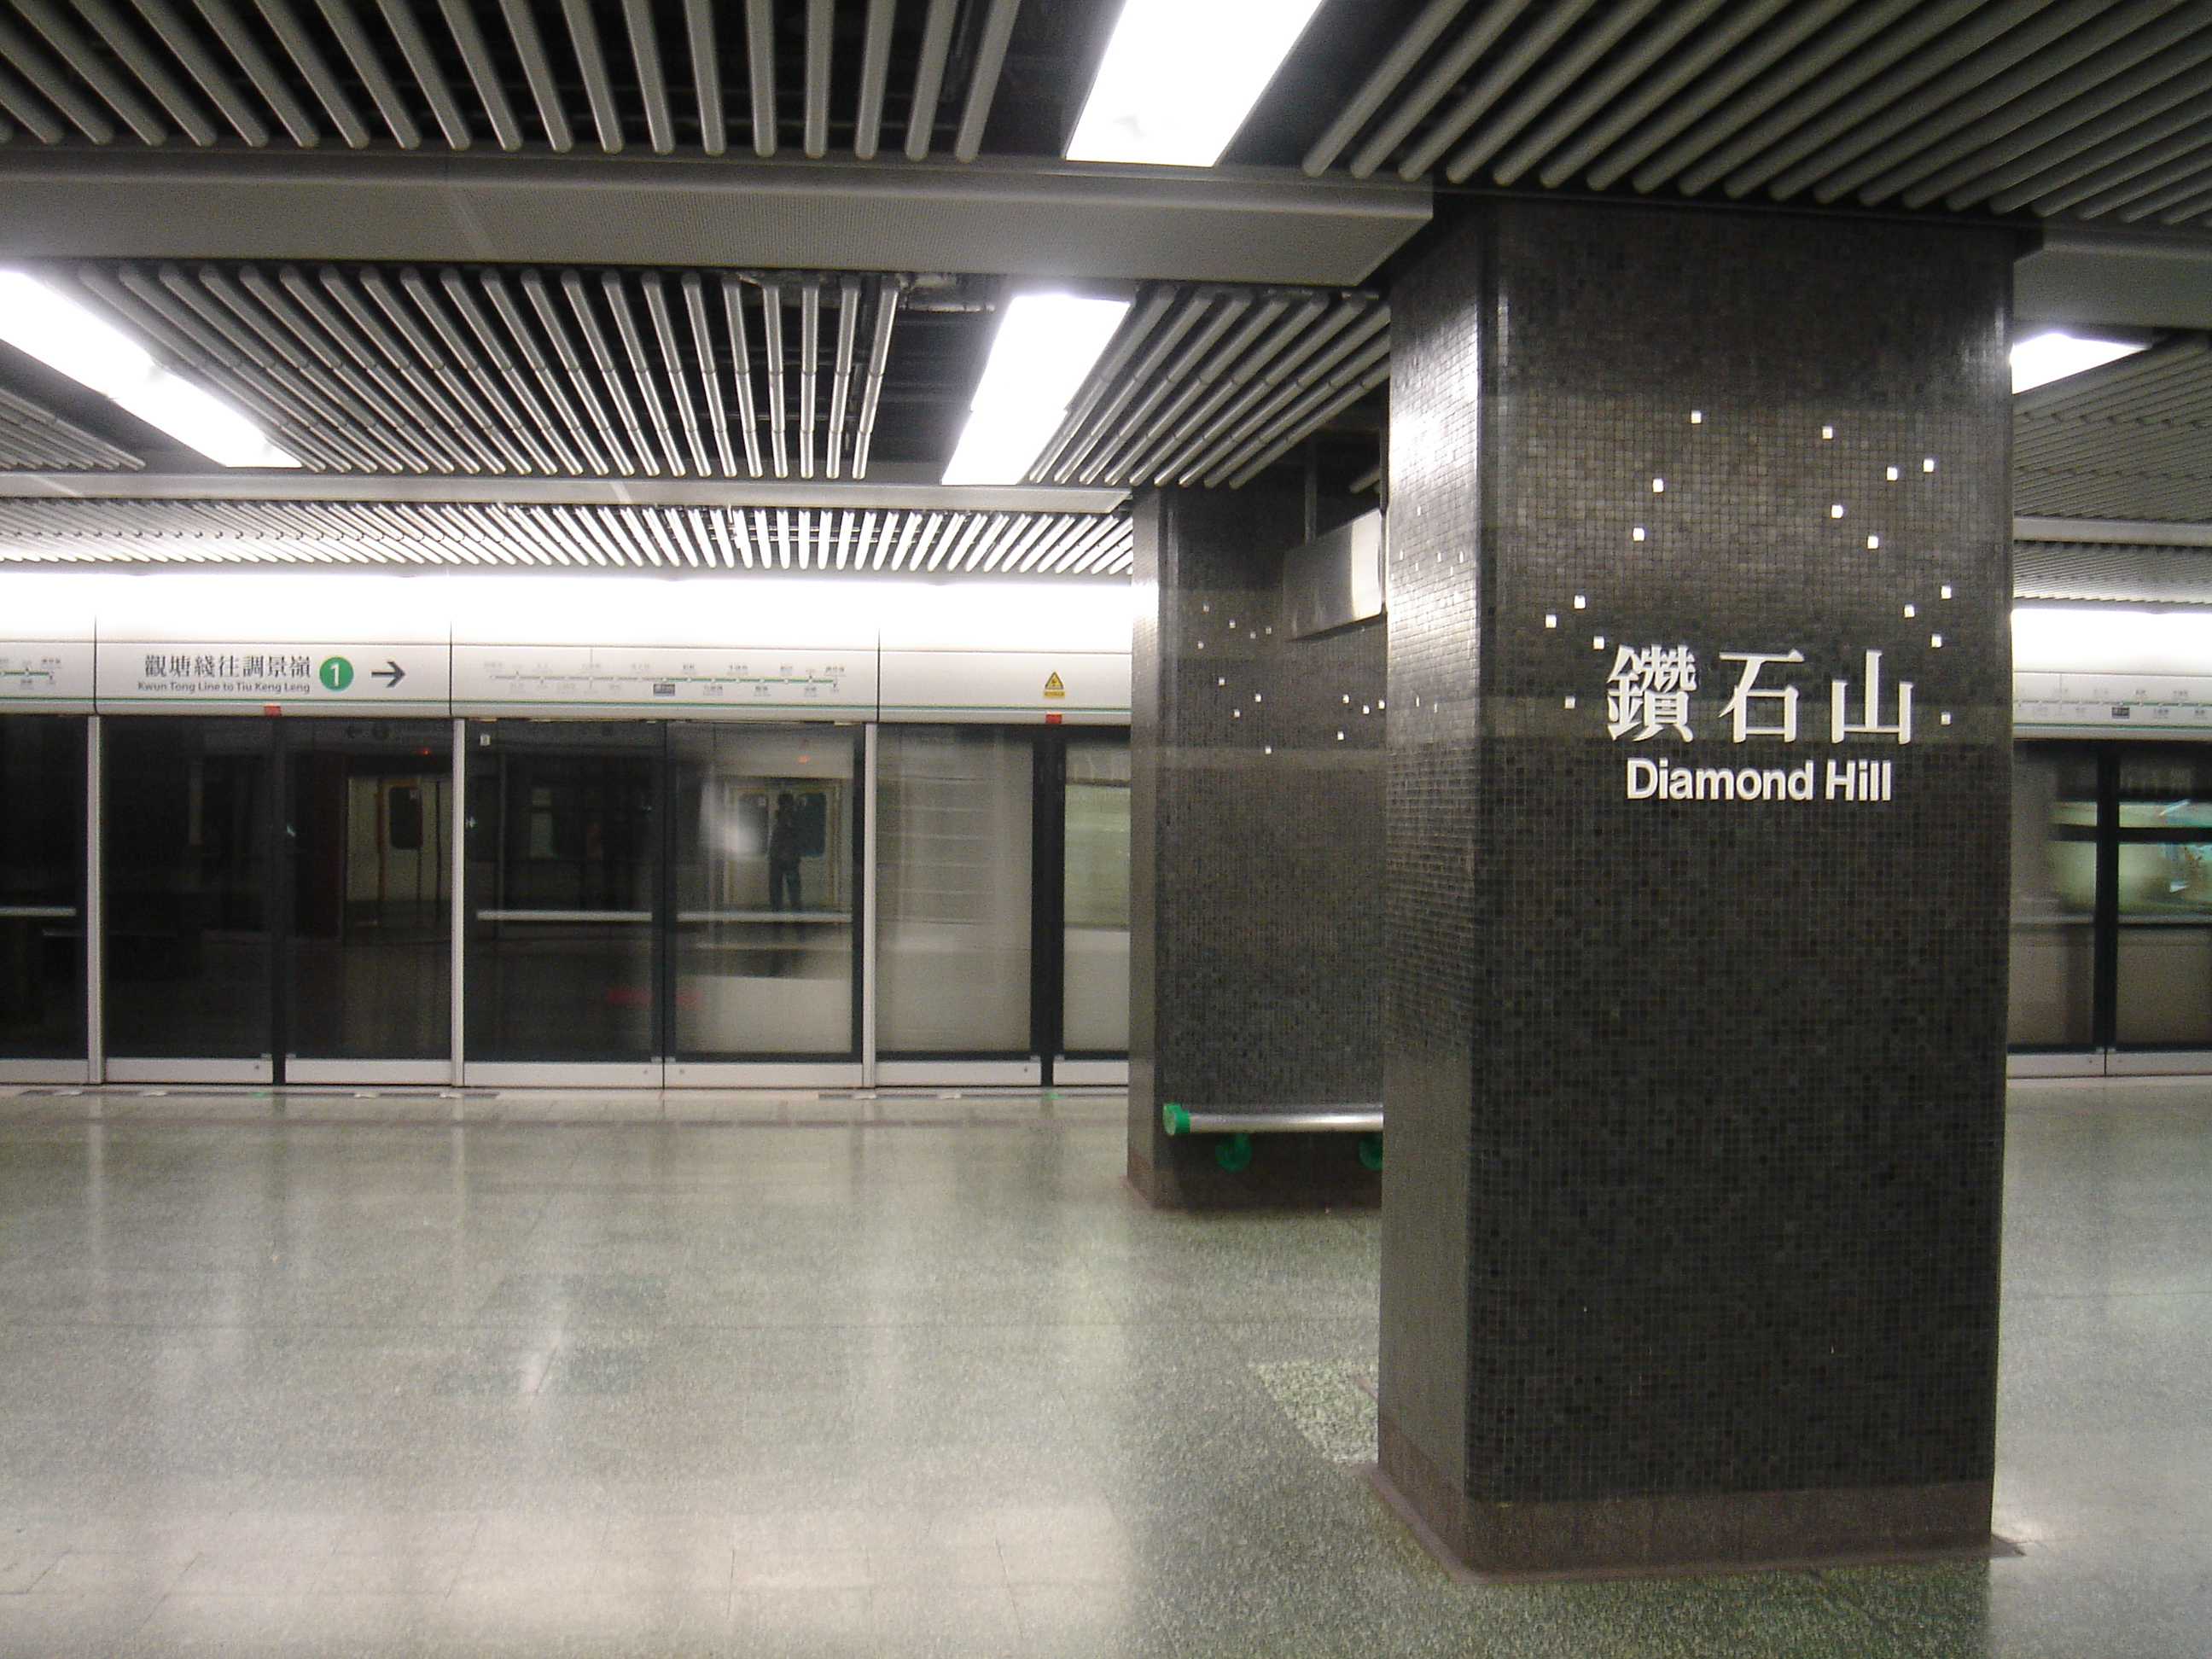 Diamond Hill MTR